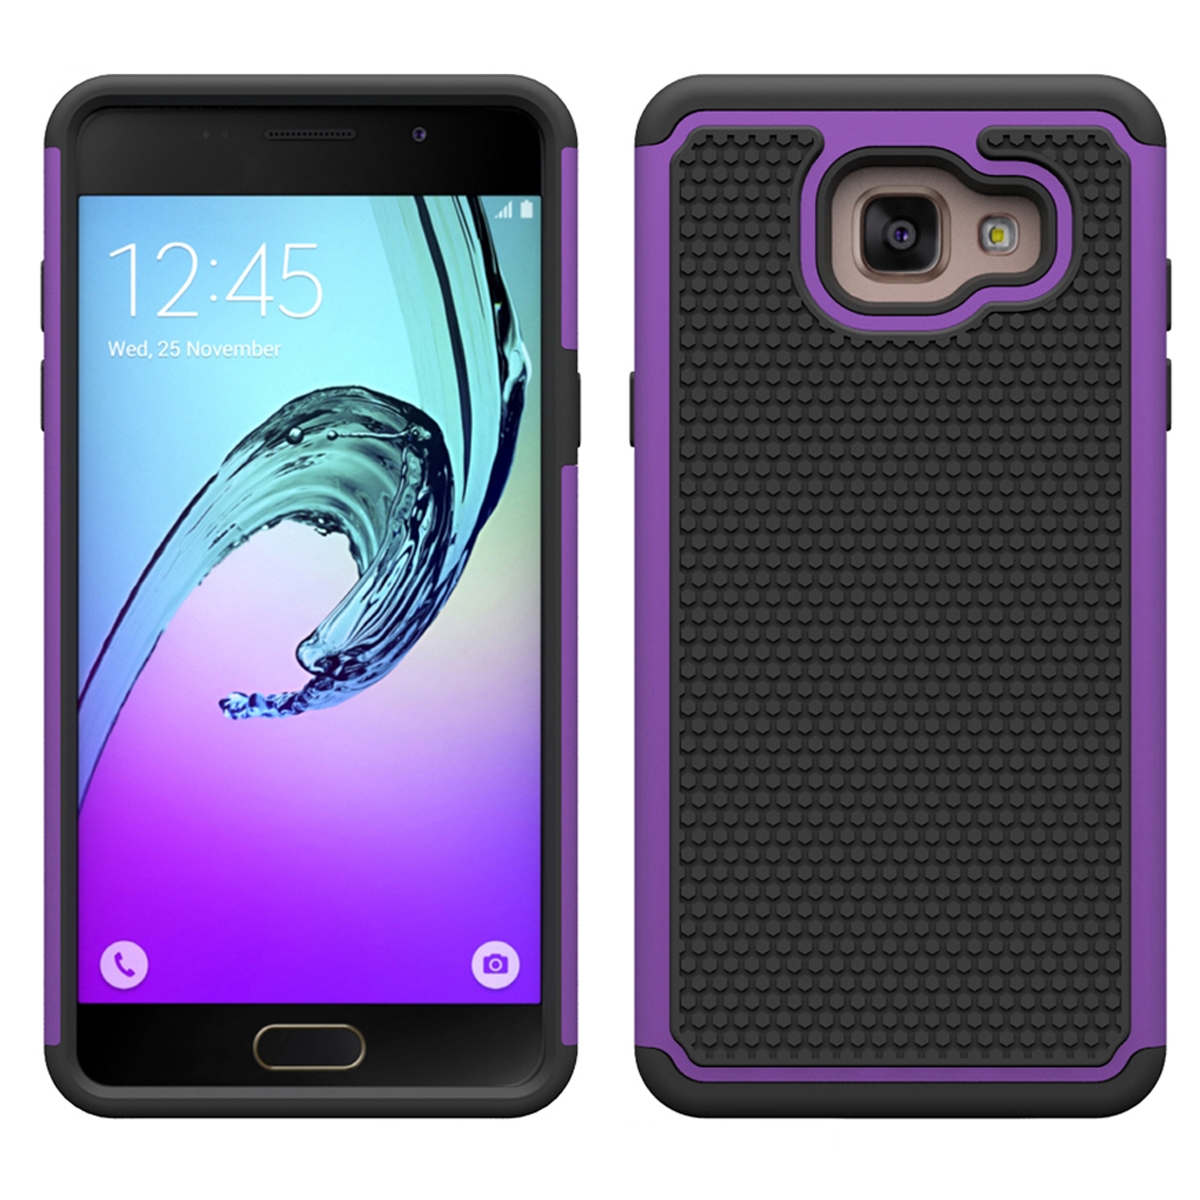 Roof dual layer rugged protective case for samsung galaxy a3 2016 a310 purple p20160224161905619